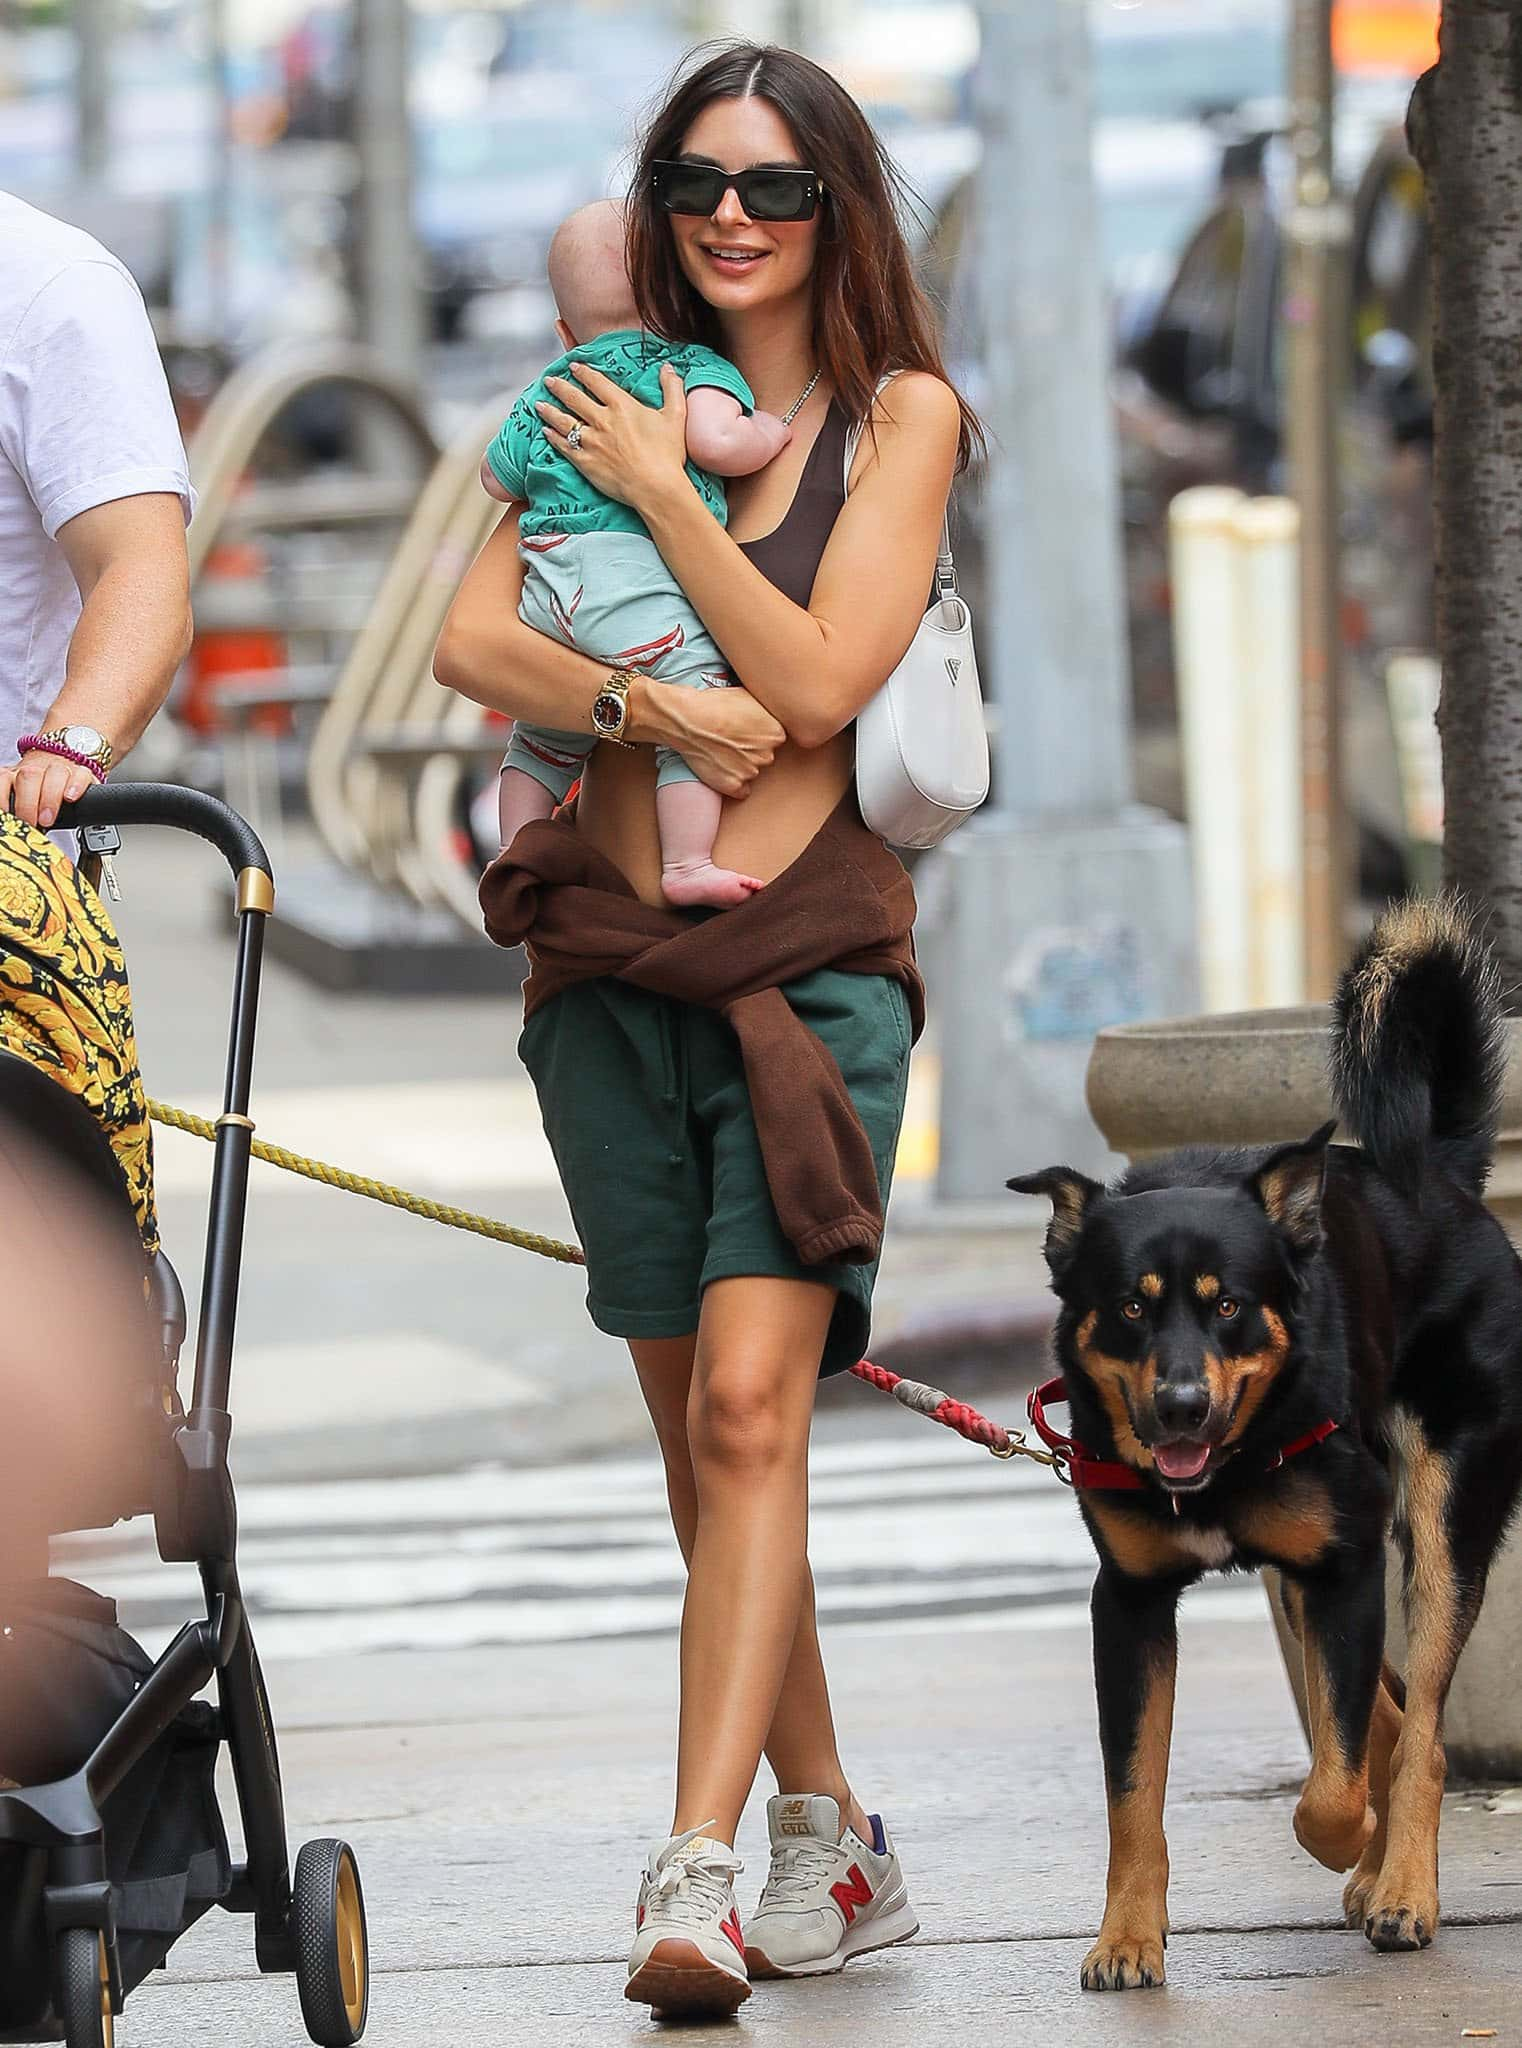 Emily Ratajkowski cradles her son in her arms in a brown ENVT bra top and green long shorts